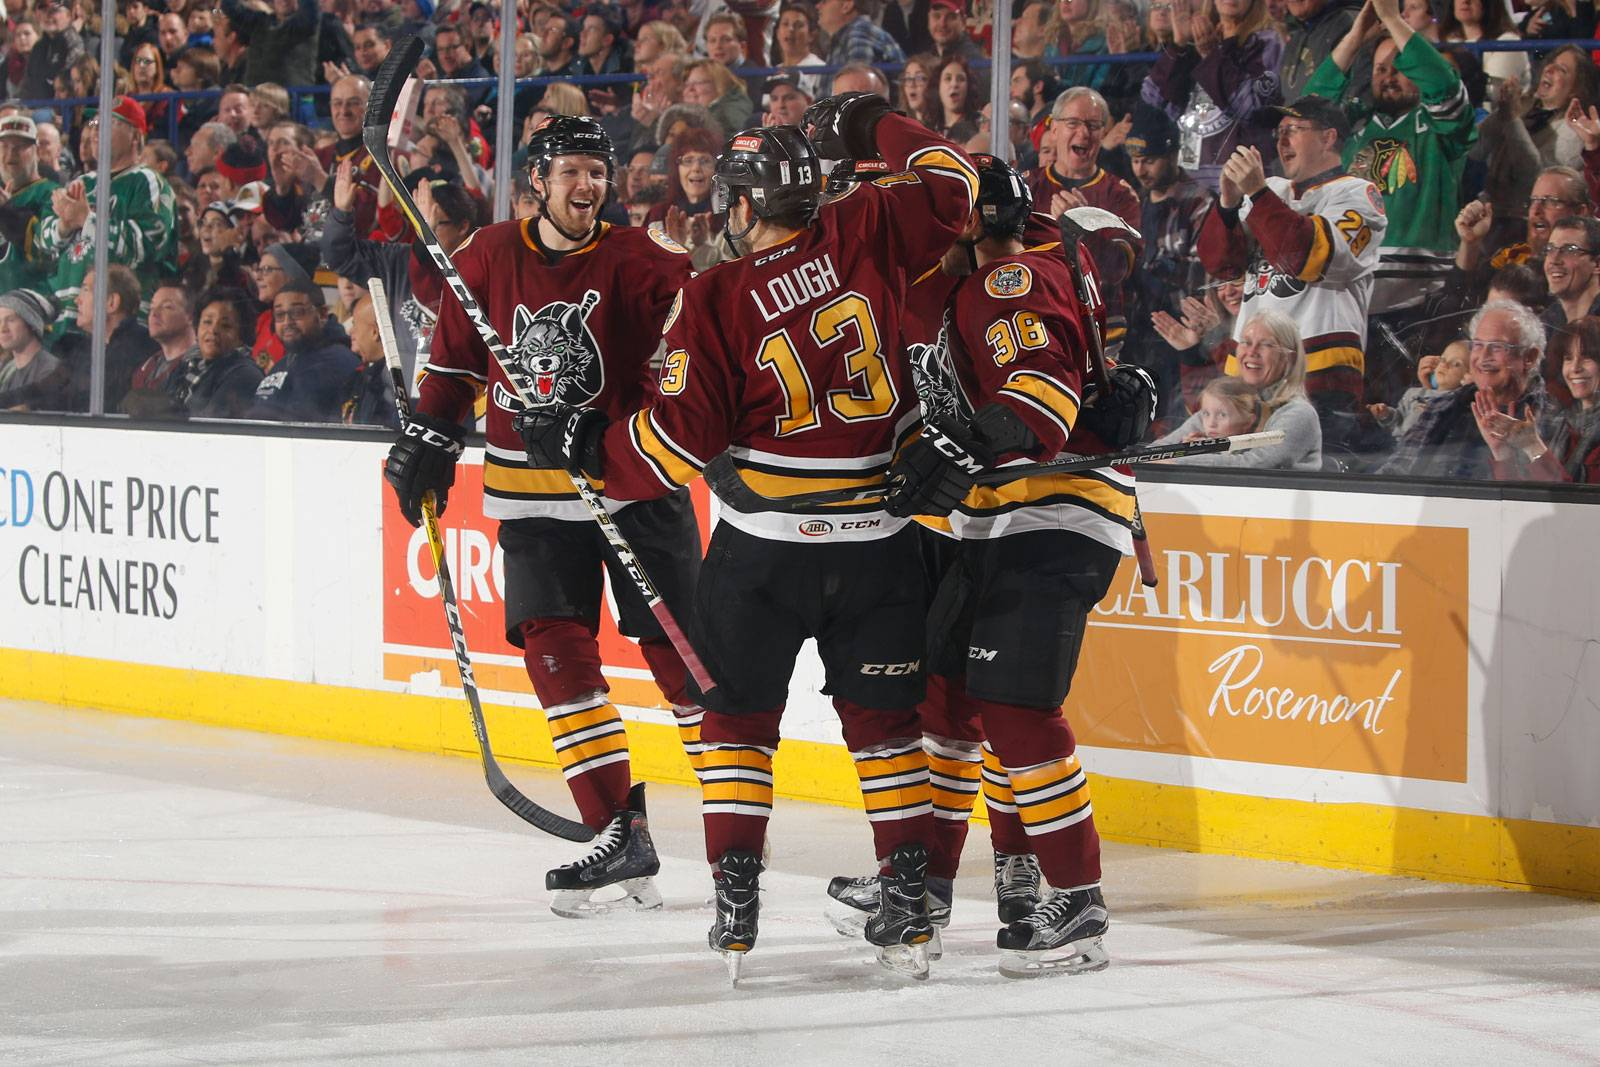 After rough start, Chicago Wolves set to make history